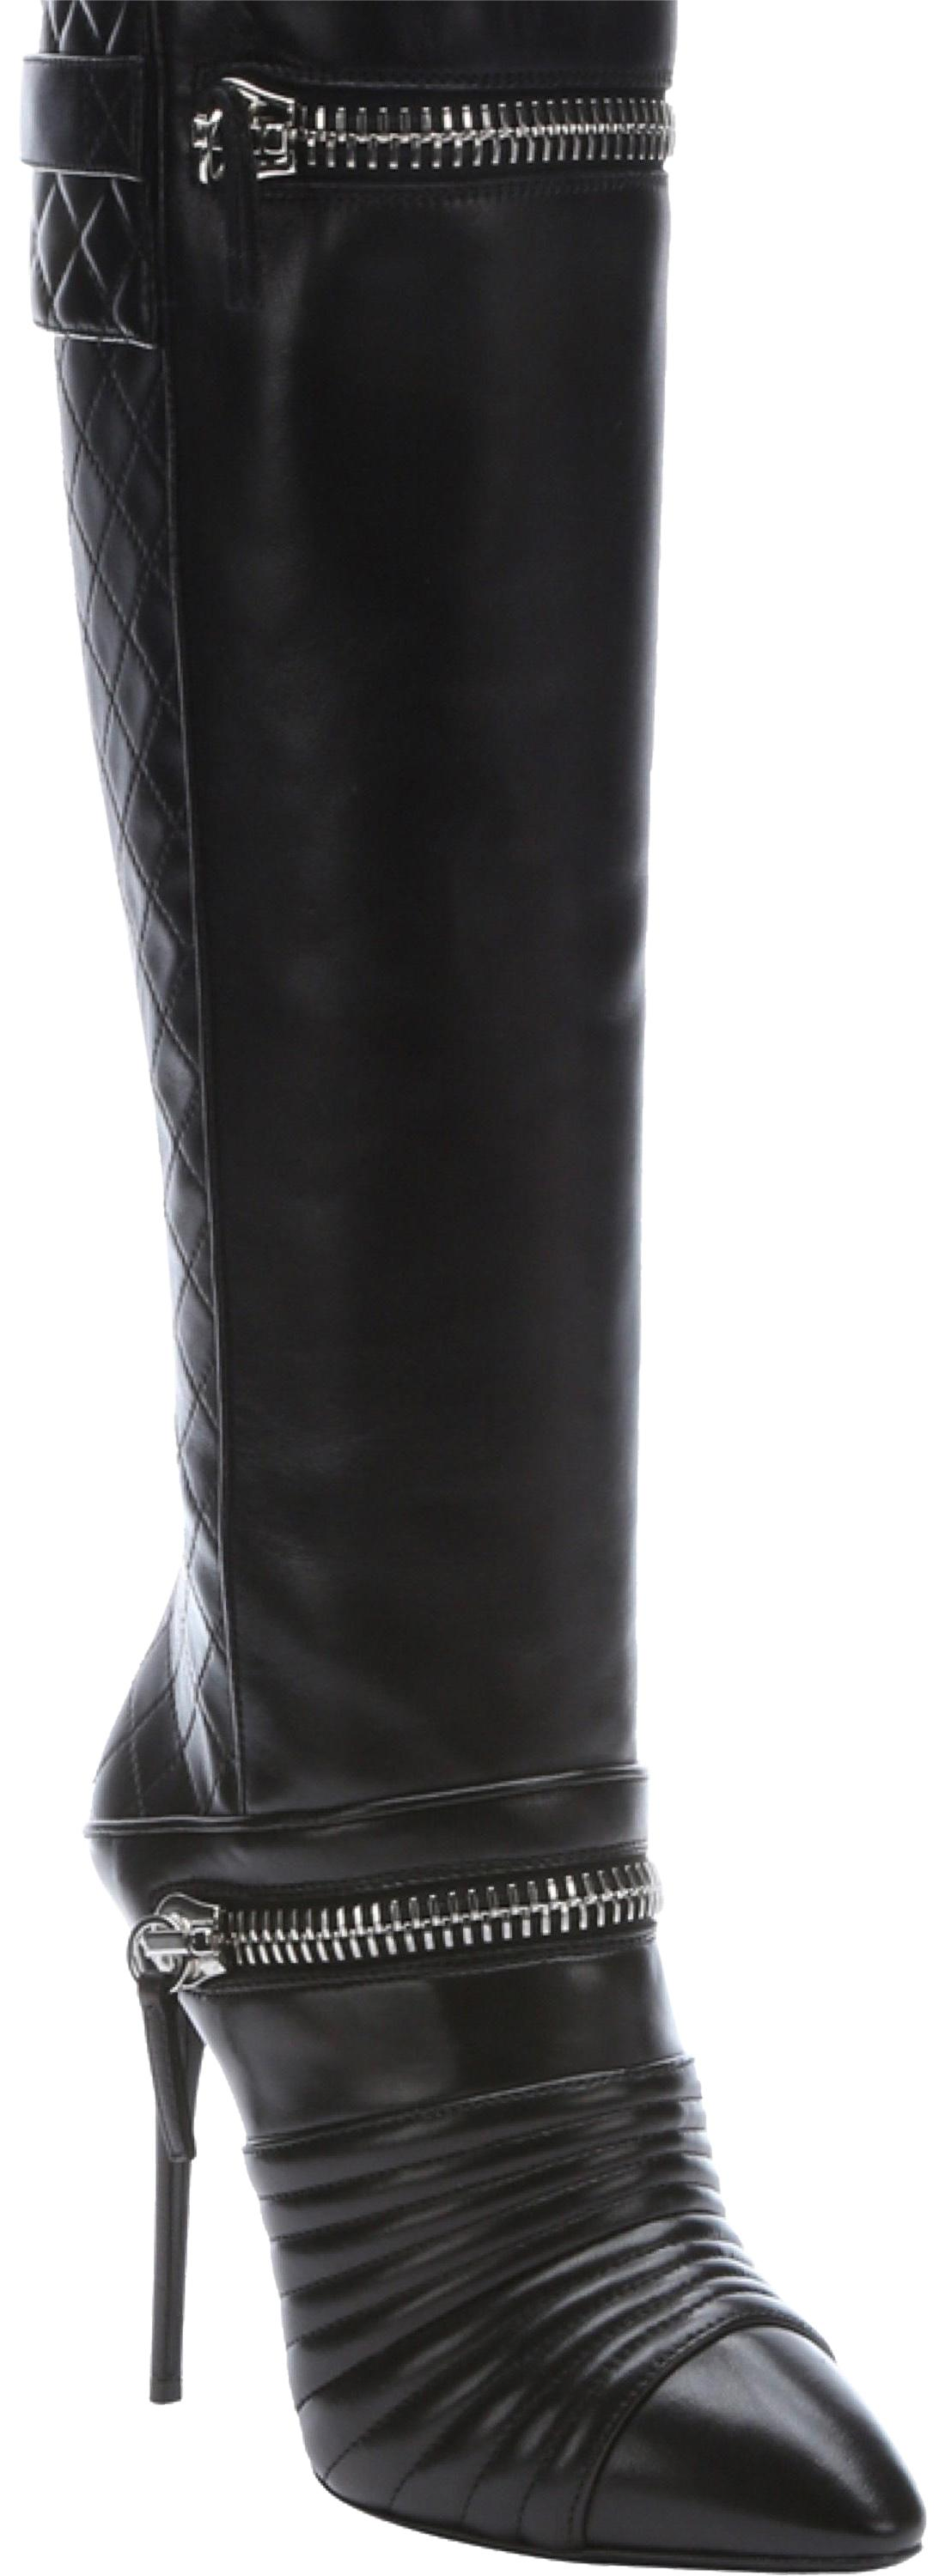 Giuseppe Zanotti Black Olinda Zipper Knee High Boots/Booties Size EU 39 (Approx. US 9) Regular (M, B)